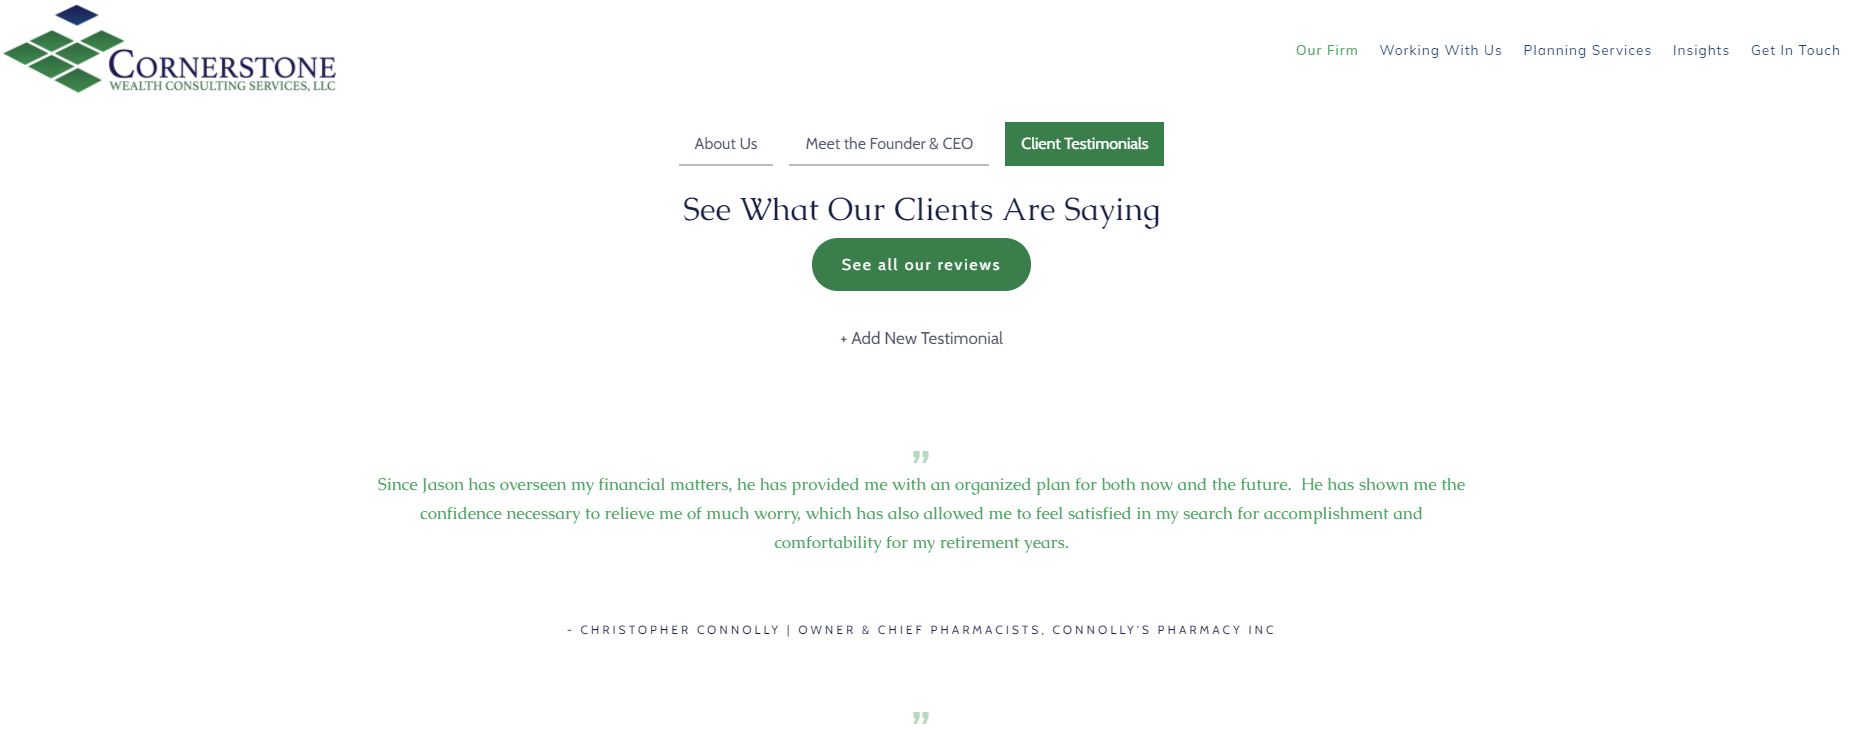 Cornerstone Wealth Consulting Services Testimonial Page